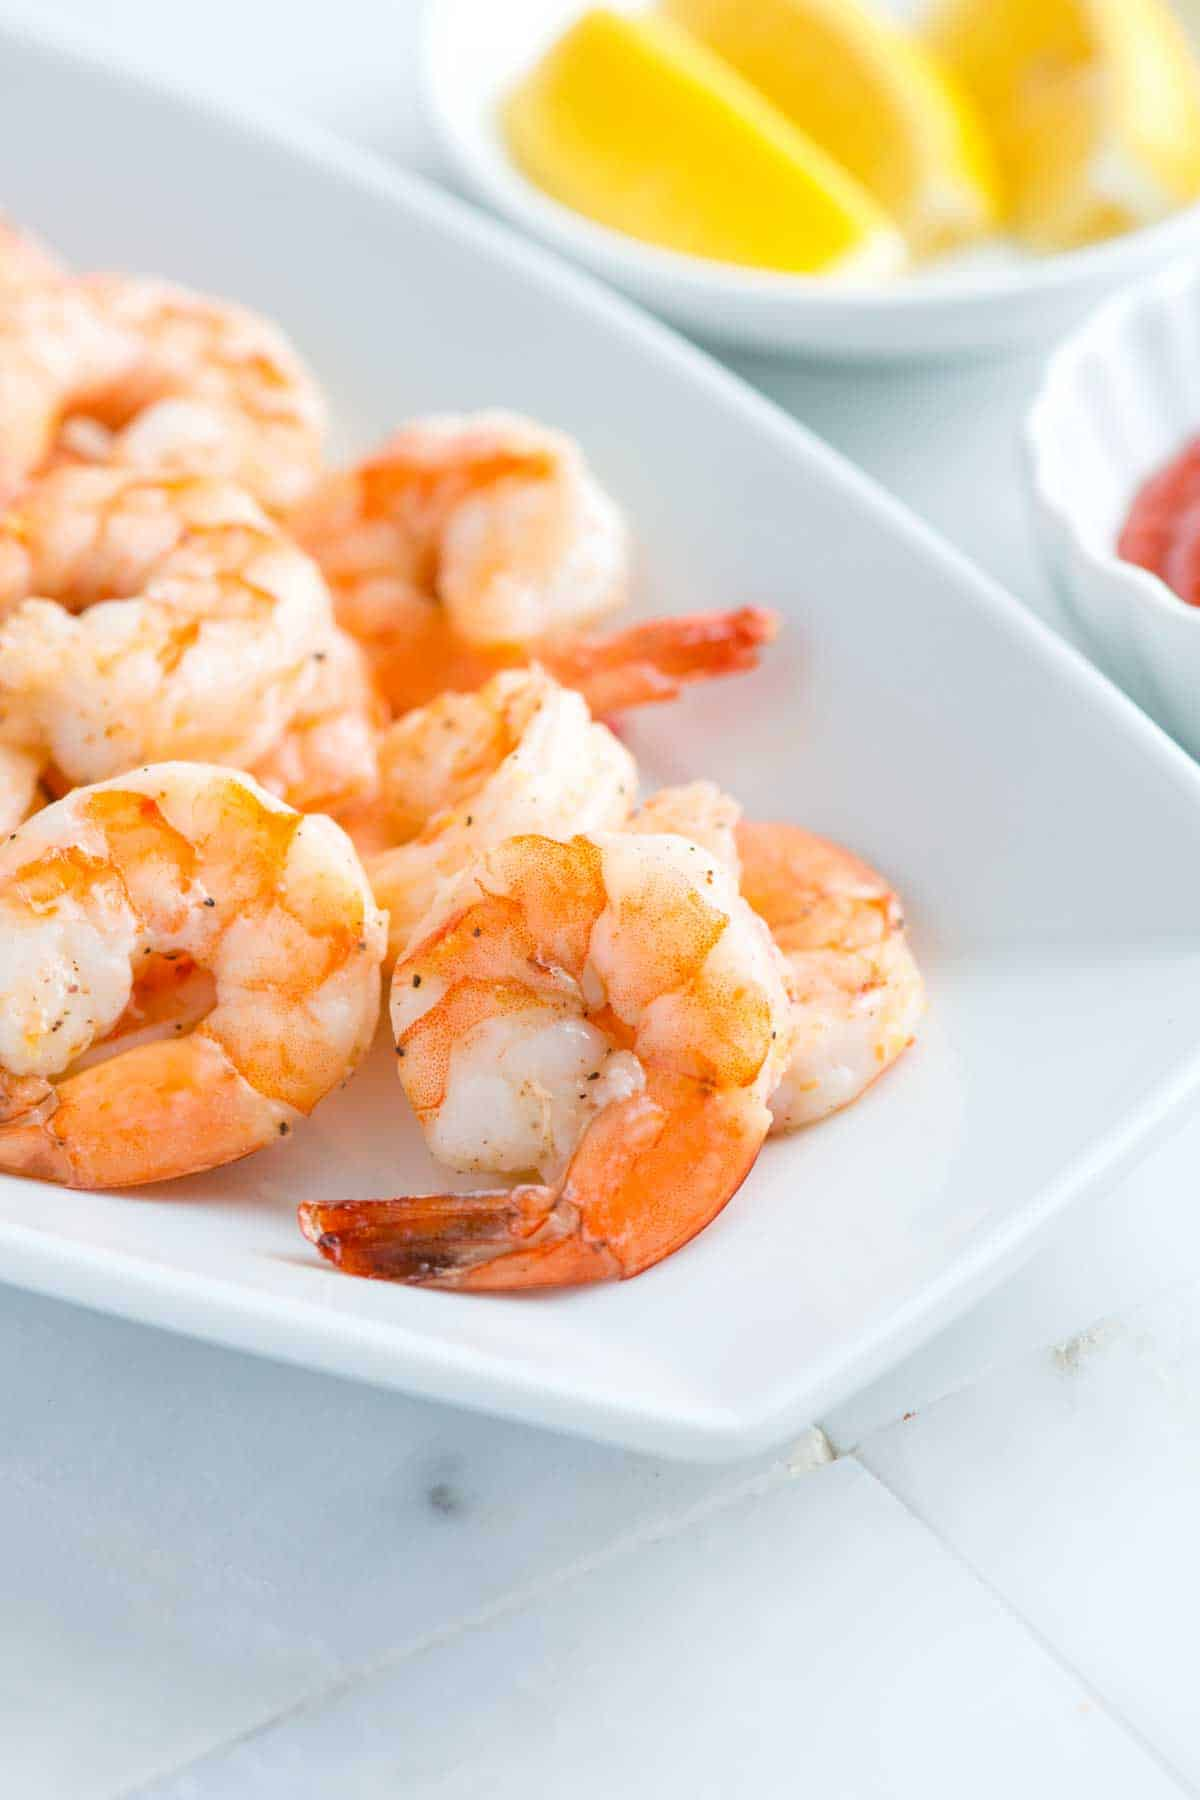 For The Best Shrimp Cocktail, Roast The Shrimp